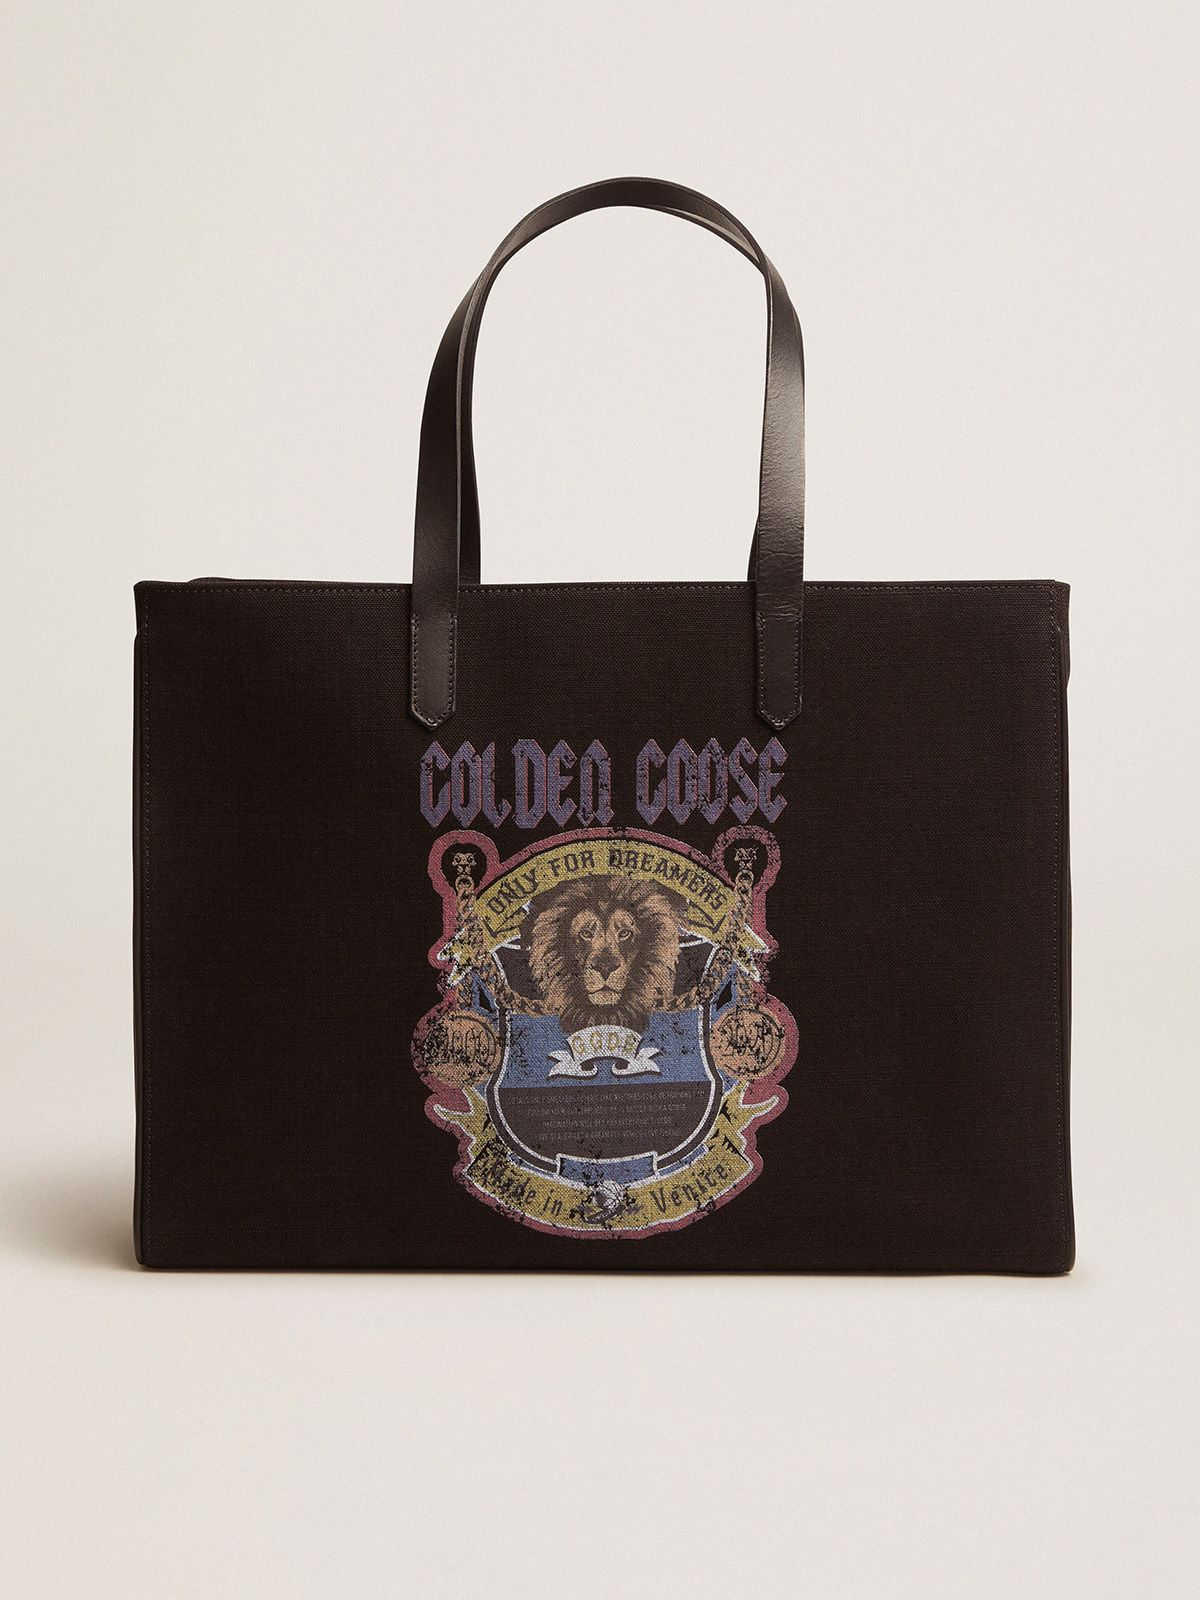 Black California East-West bag with vintage print